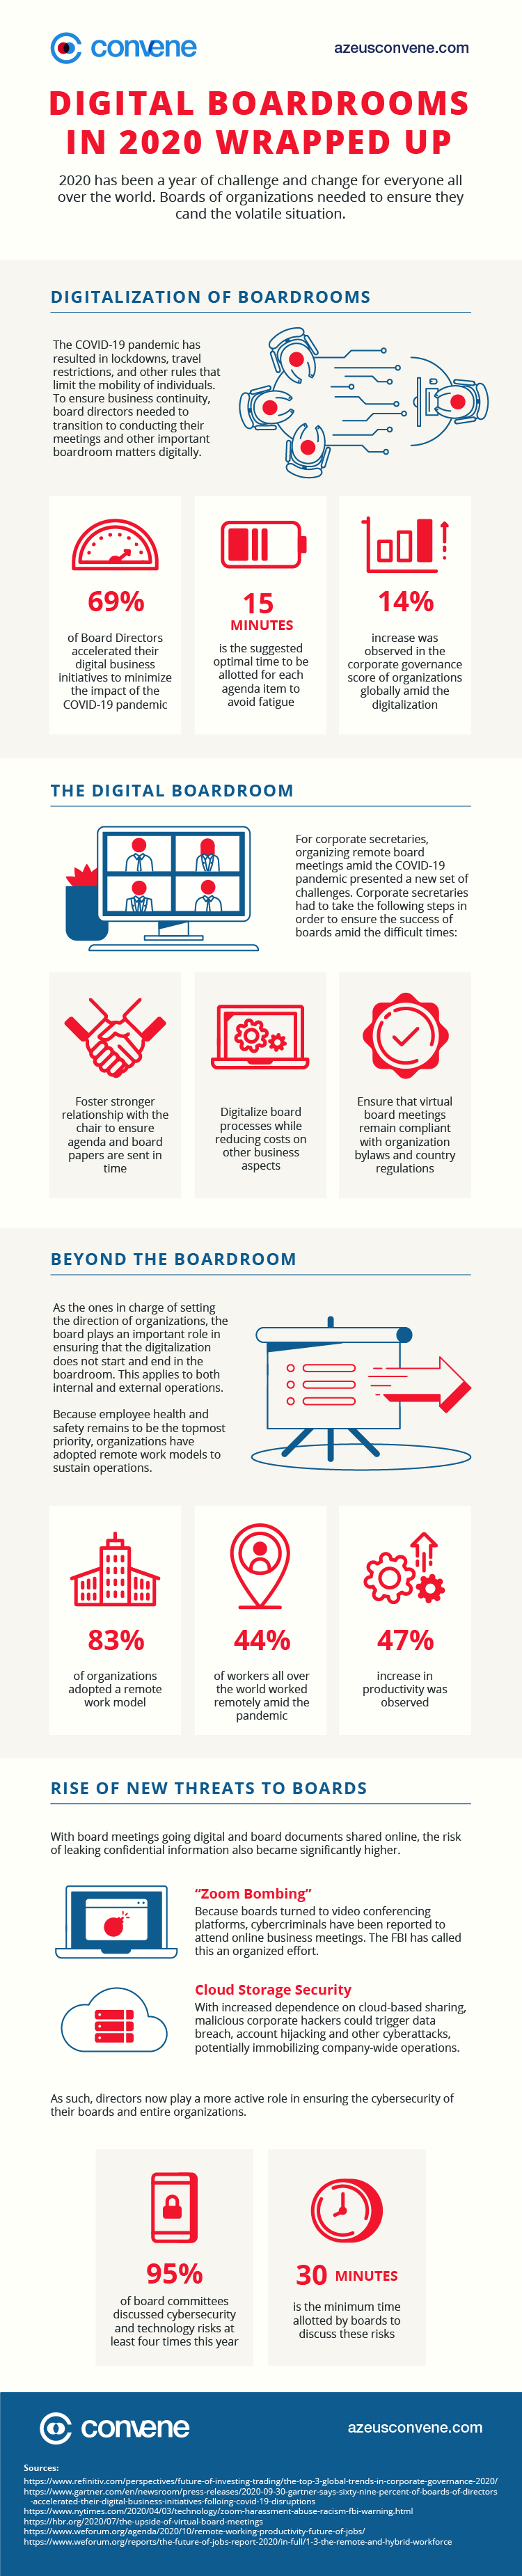 Digital Boardrooms in 2020: Wrapped Up